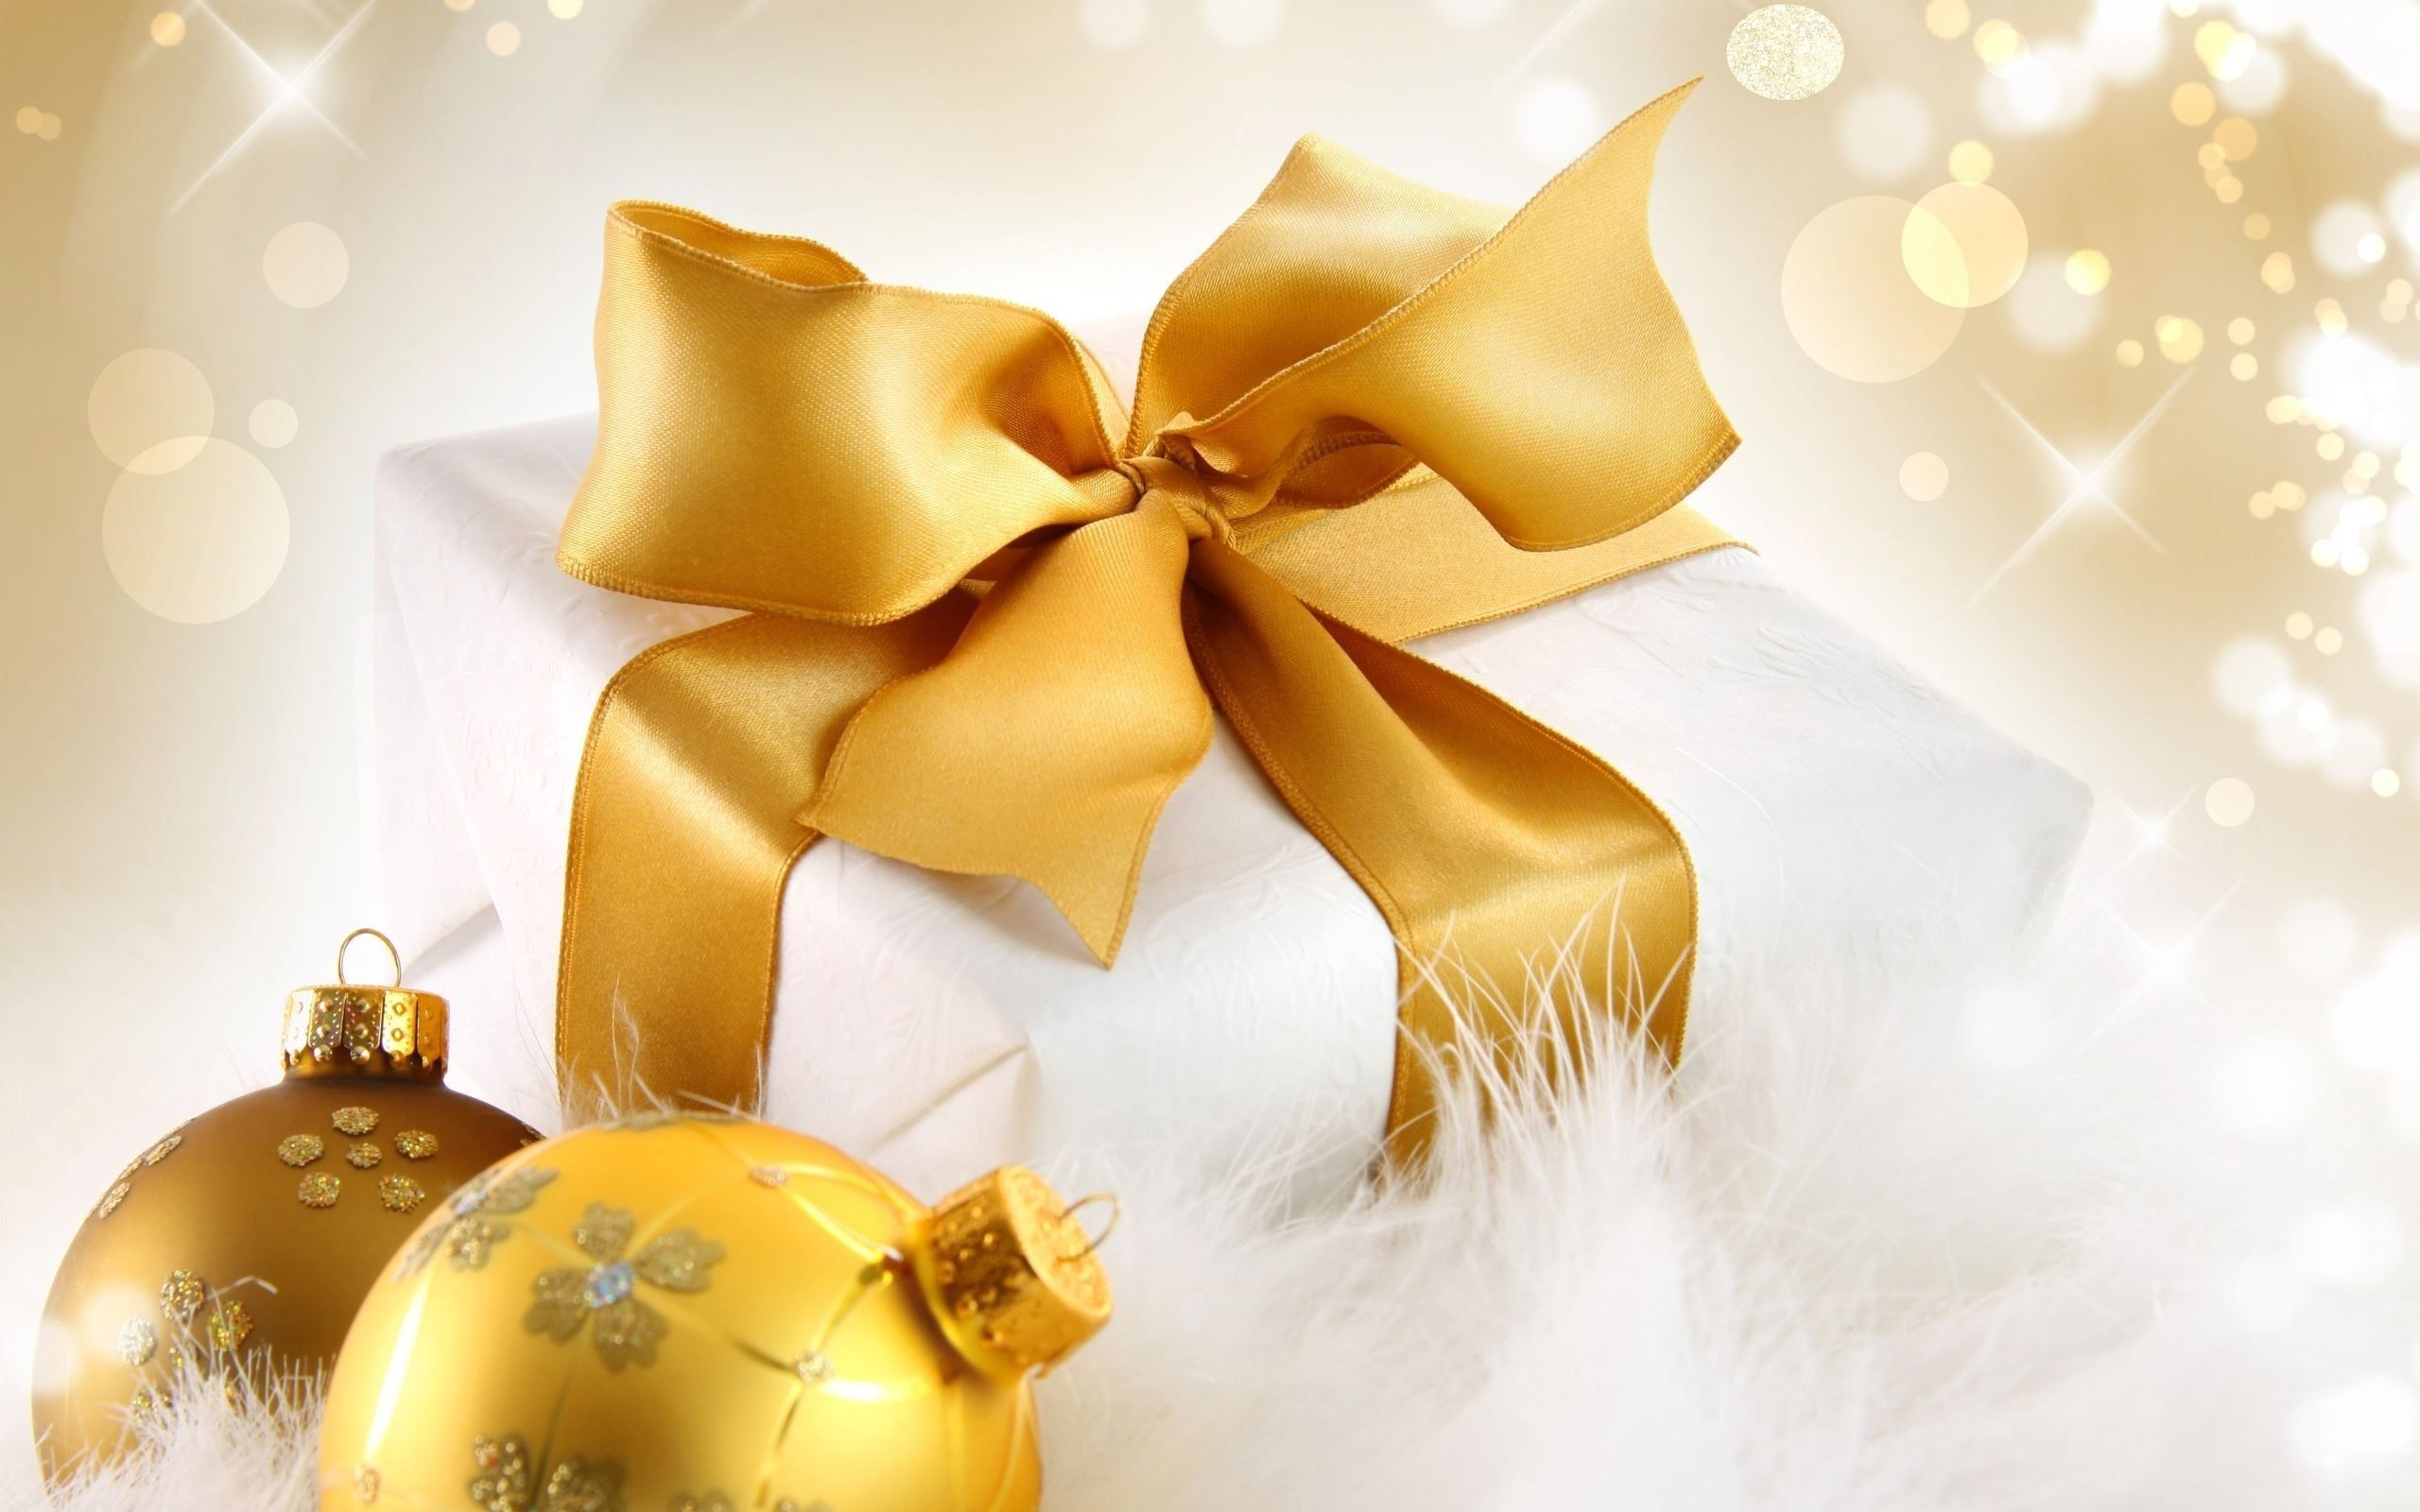 Res: 2560x1600, Christmas Gifts Backgrounds